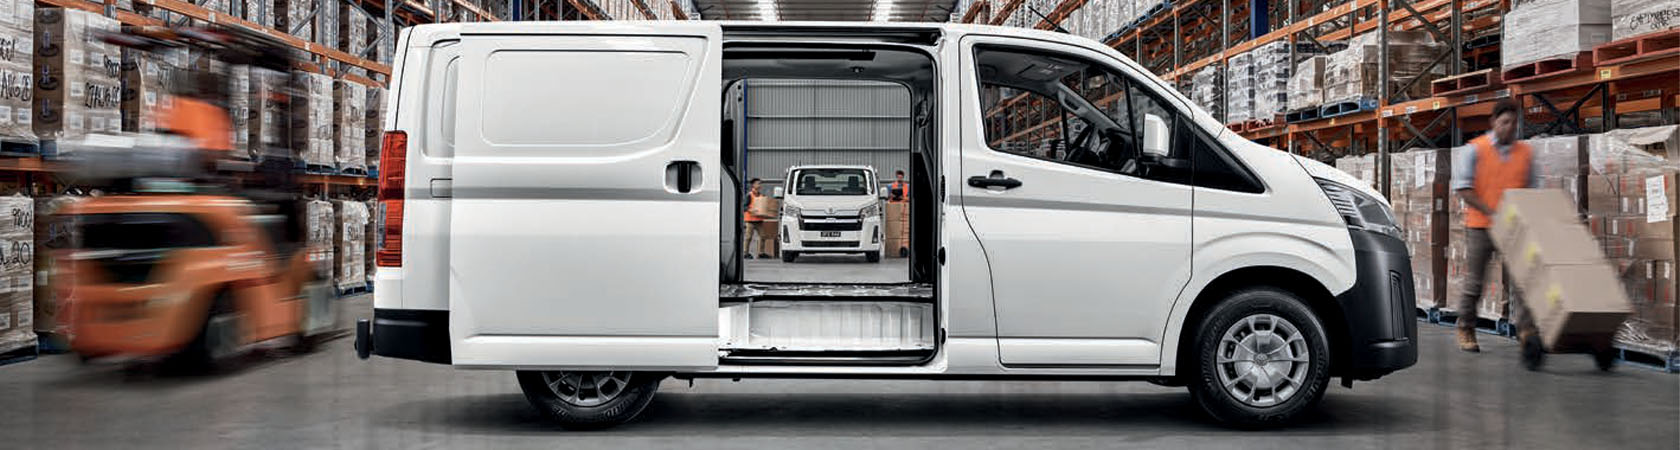 New England Toyota - Inverell WorkHorse Range